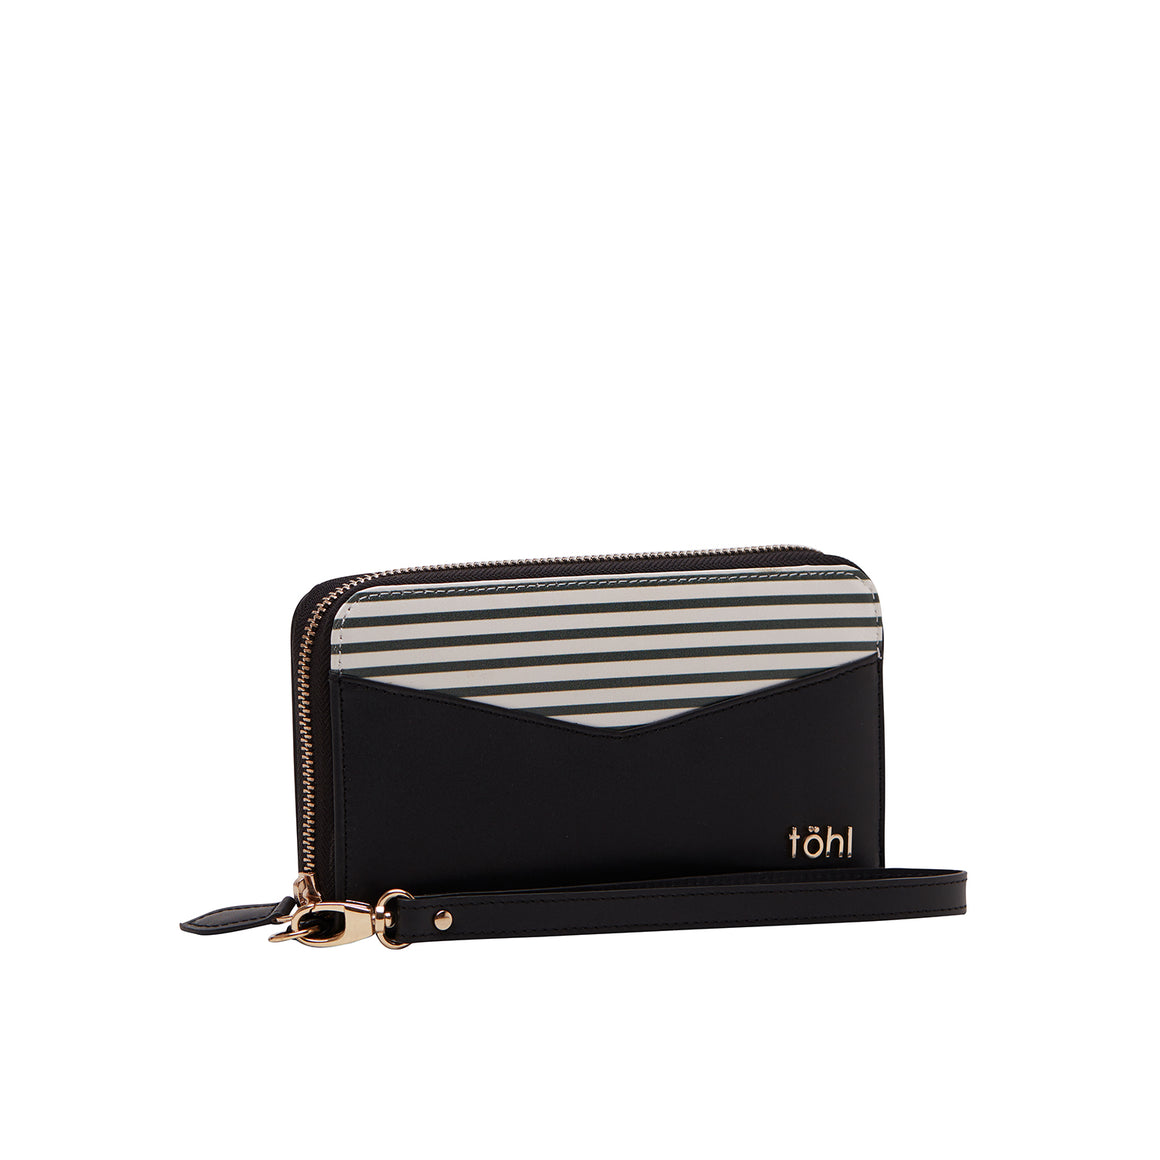 WT 0024 - TOHL GRESSE WOMEN'S WALLET - CHARCOAL BLACK